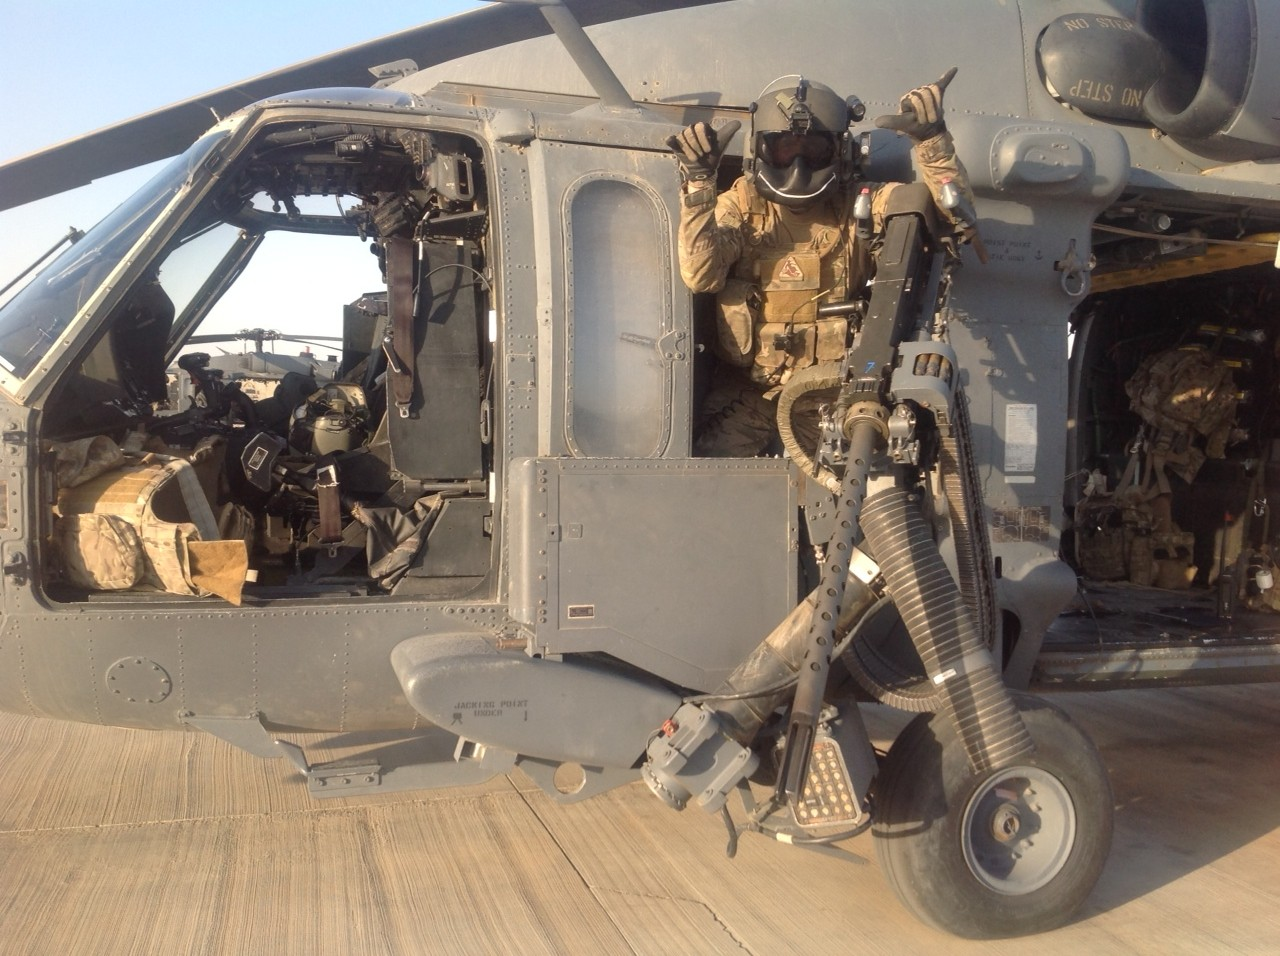 Pararescue-machine gunner